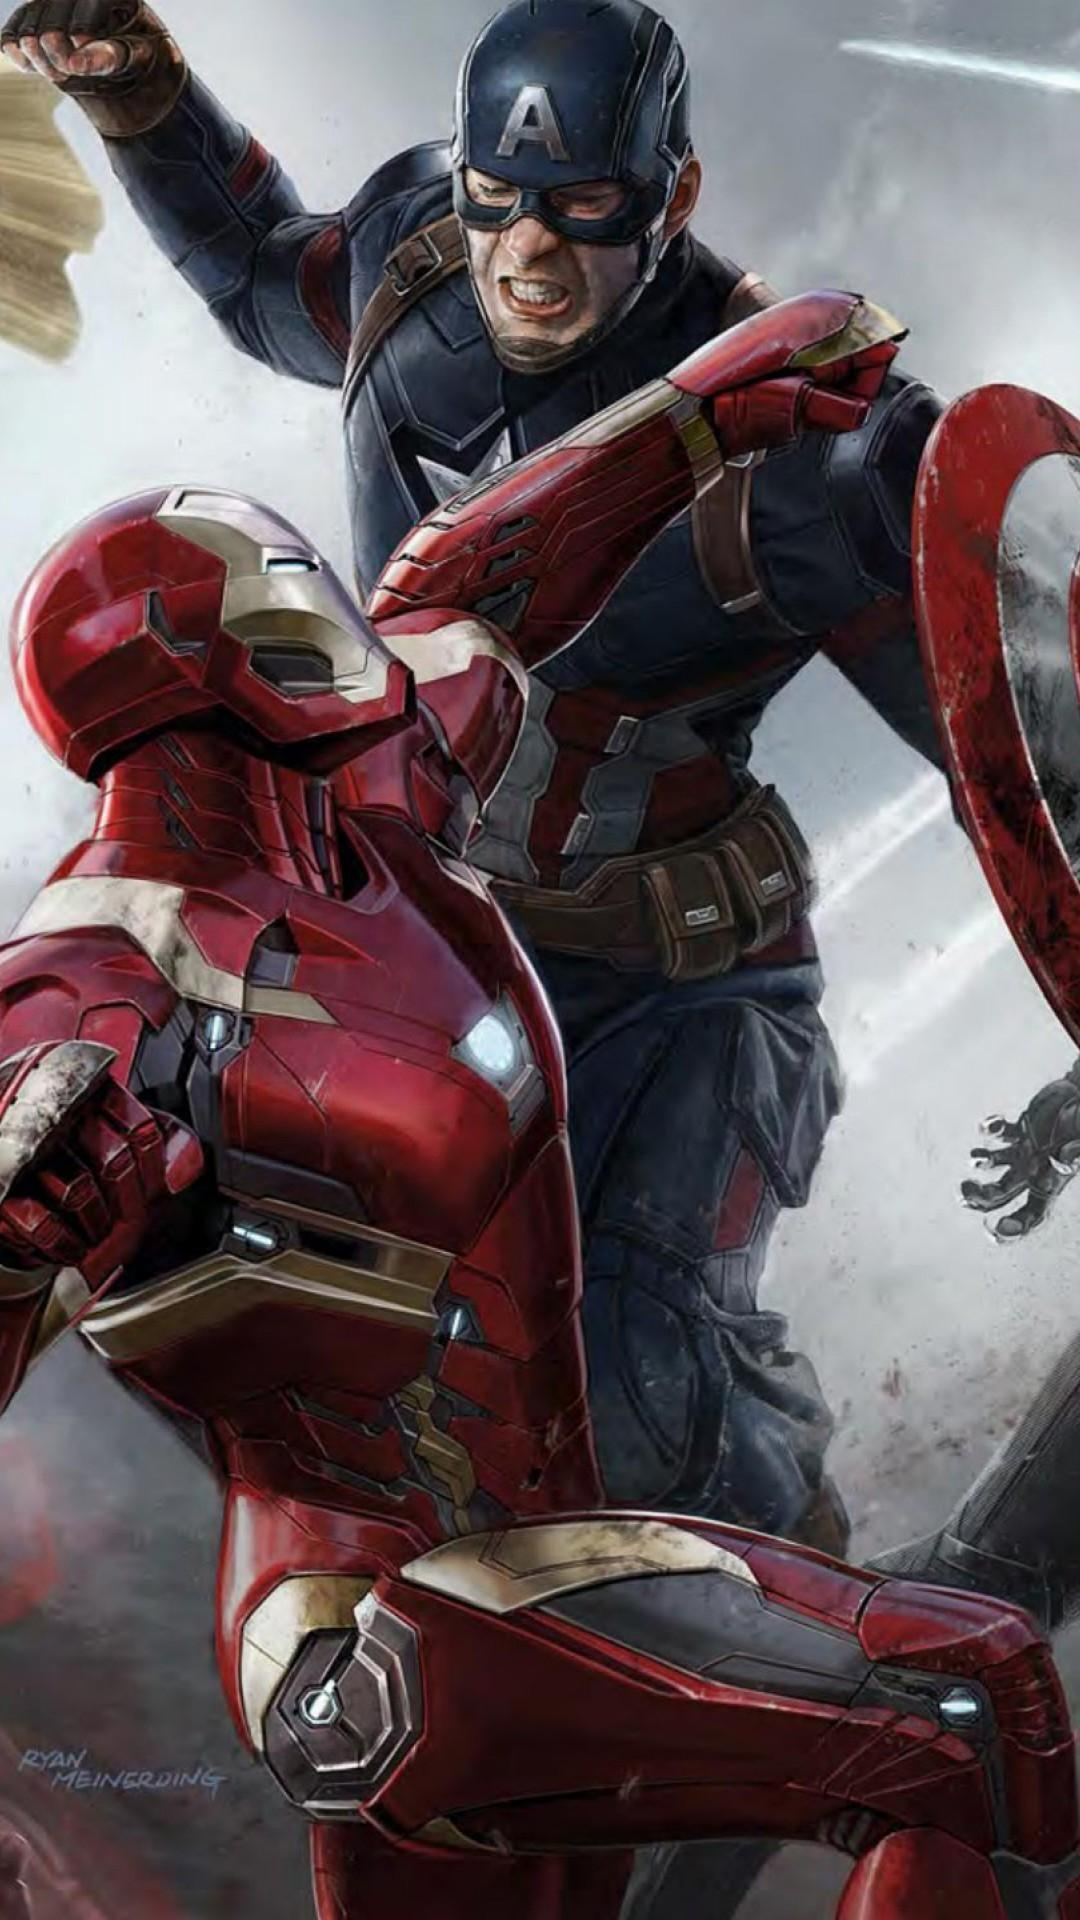 Marvel iPhone Hd Wallpapers - Wallpaper Cave